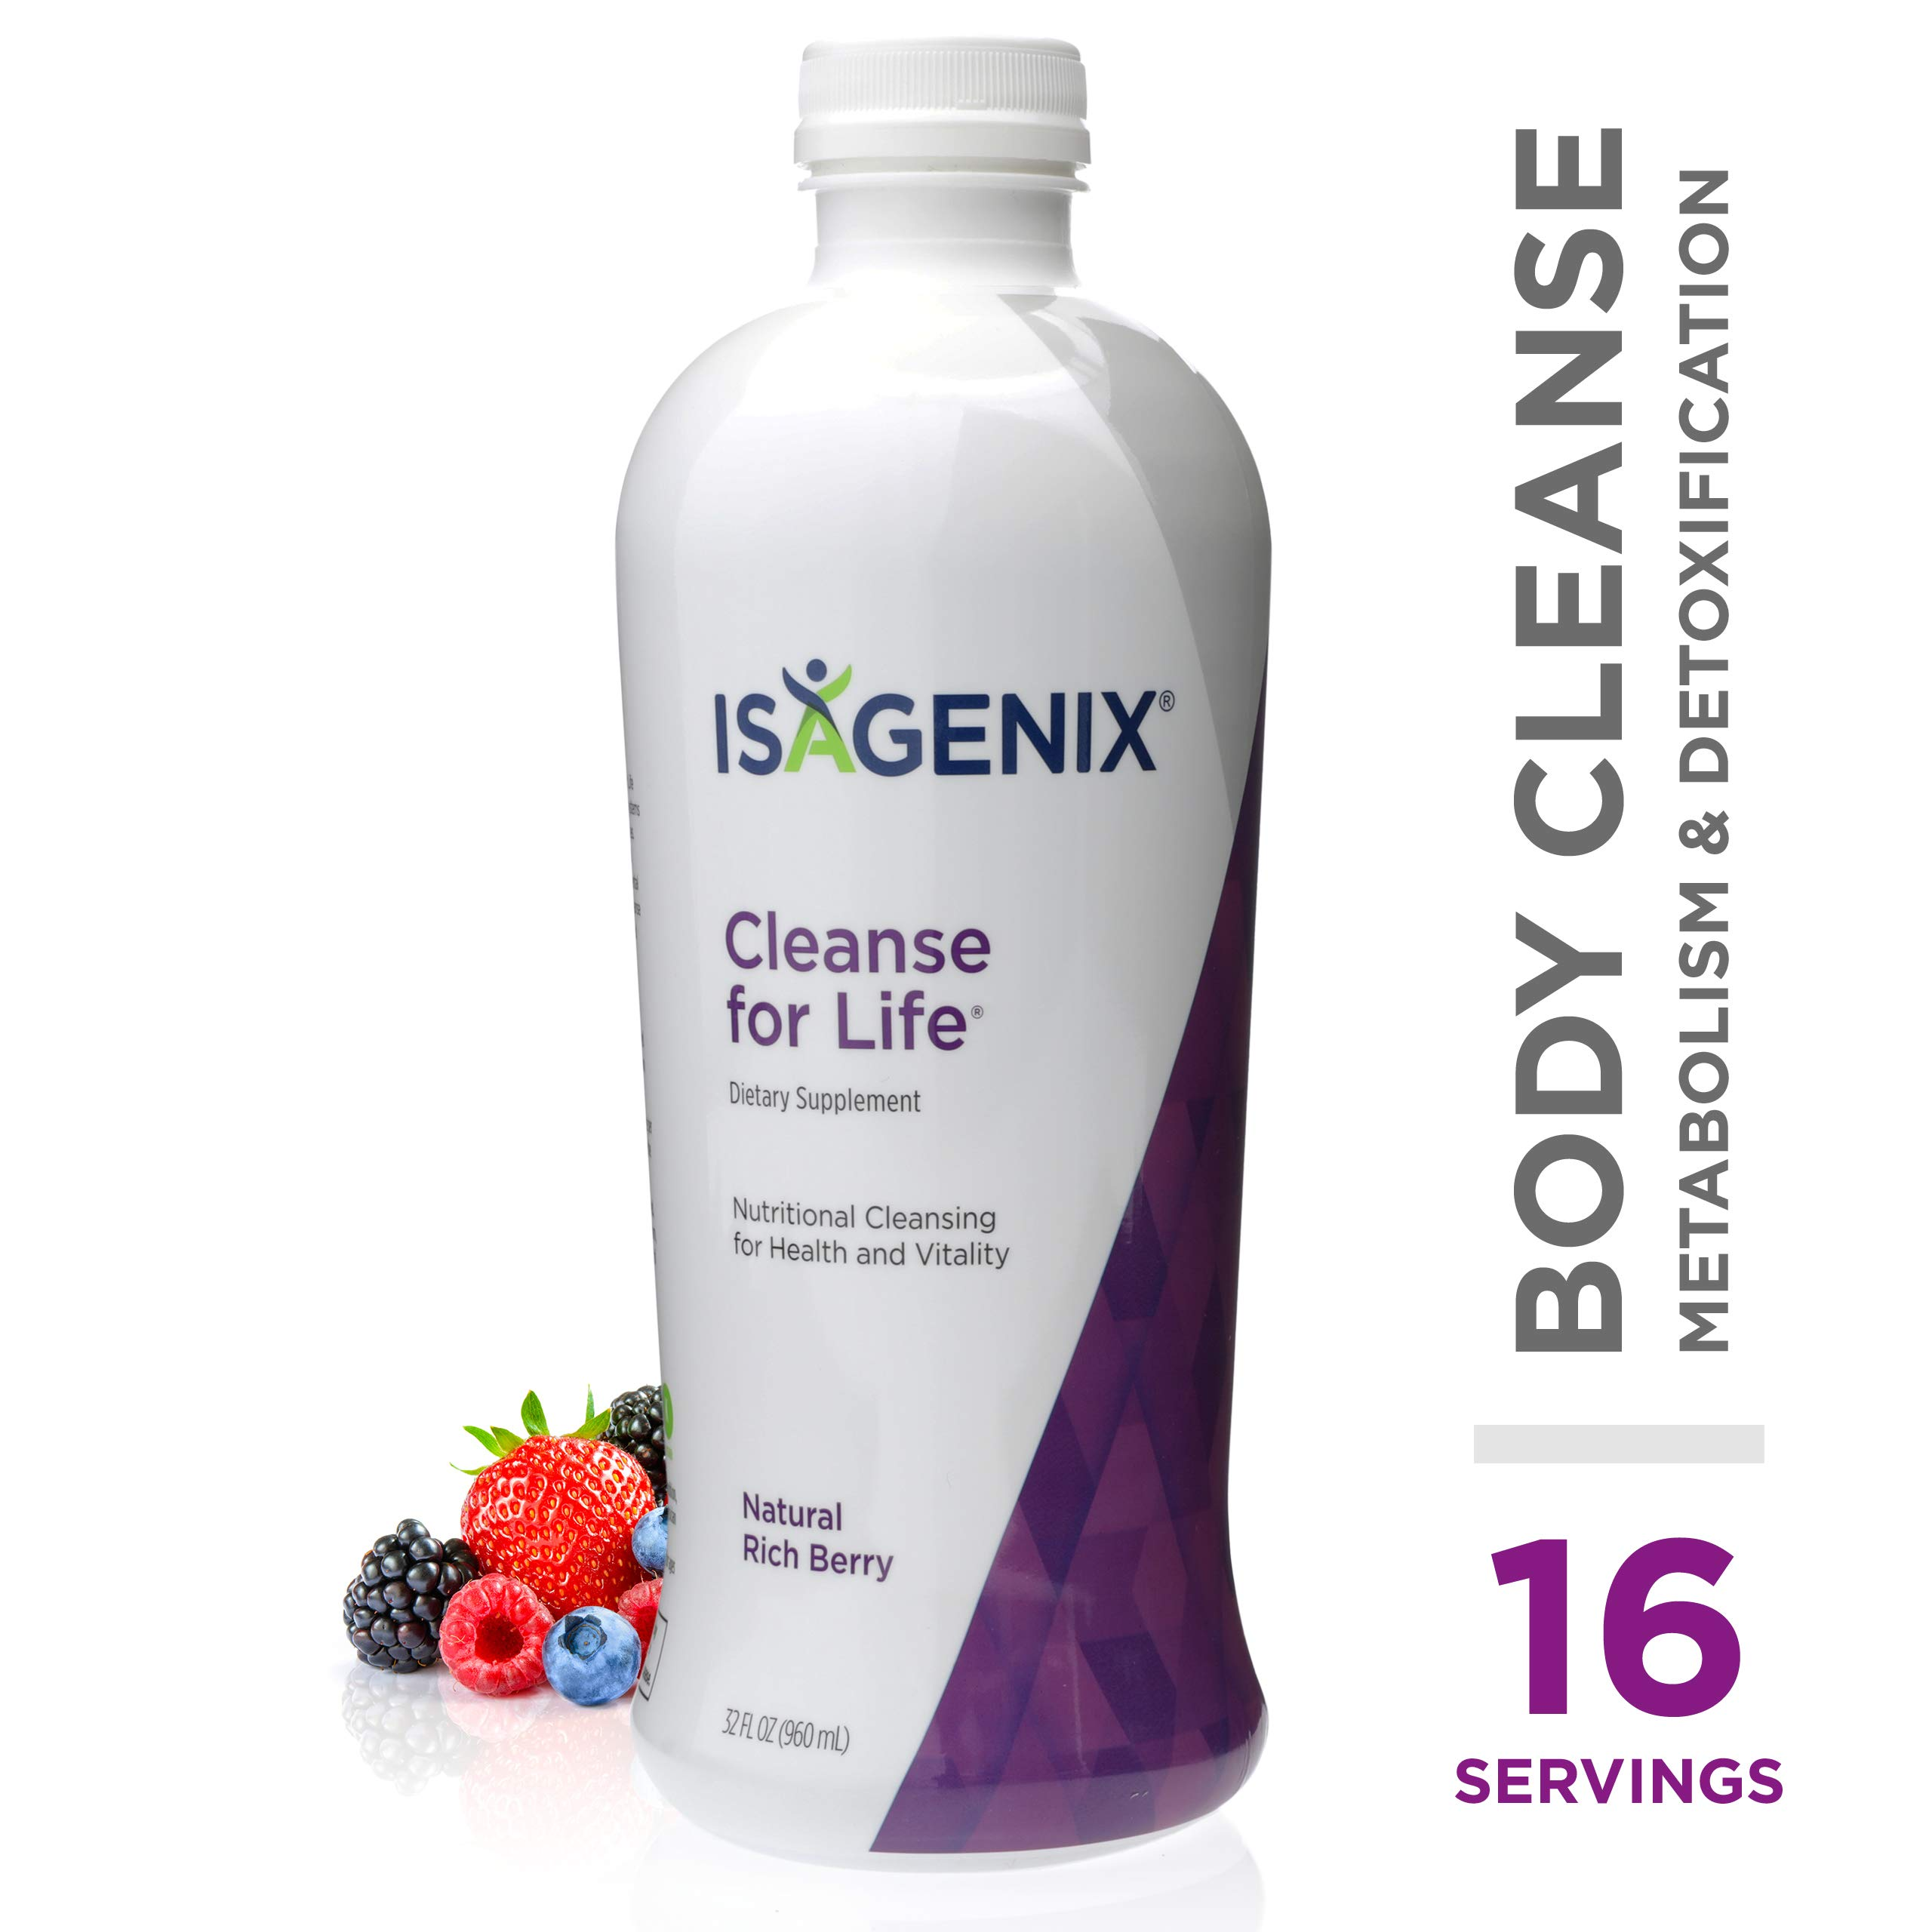 Cleanse for Life® - Natural Rich Berry Liquid - 32-Ounce Bottle by Isagenix